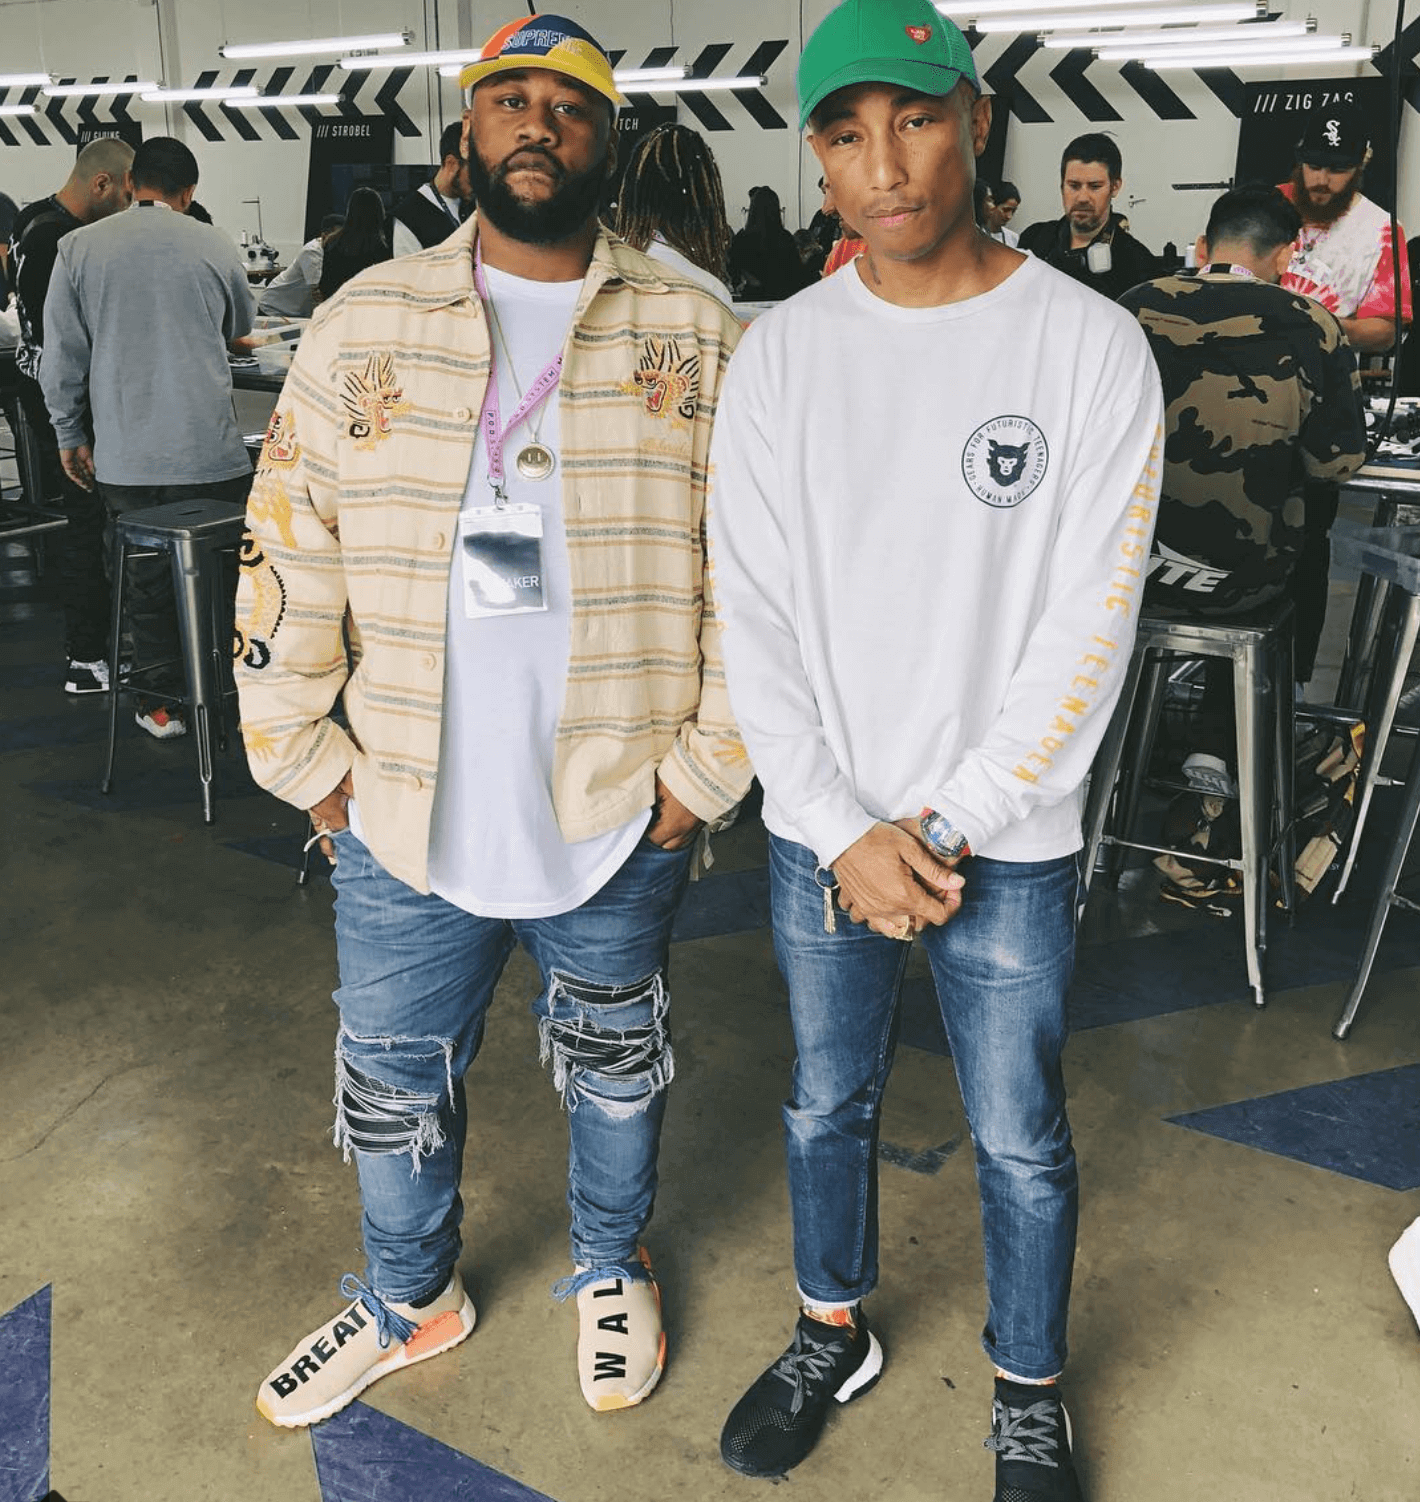 Joe Fresh in the adidas Pharrell Williams Hu Hiking NMD and Pharrell Williams in the adidas POD 3.1 System